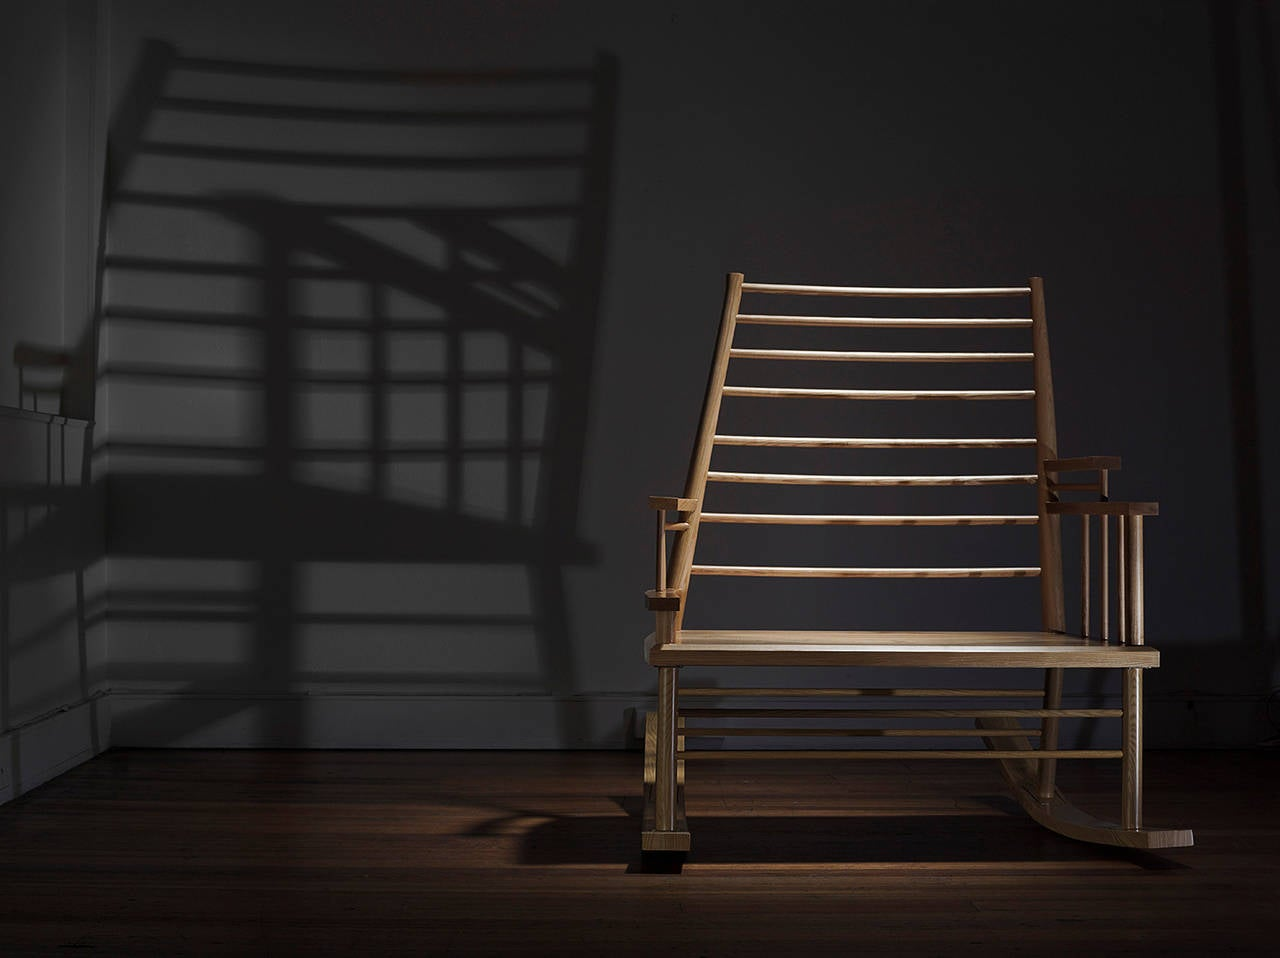 Chinese Man's File is a rocking chair designed for the roughly 16,500 Chinese gold diggers who walked from Robe in South Australia to the Victorian goldfields (480 kilometres in as little as 13 days) during the mid-19th Century. The rocking motion